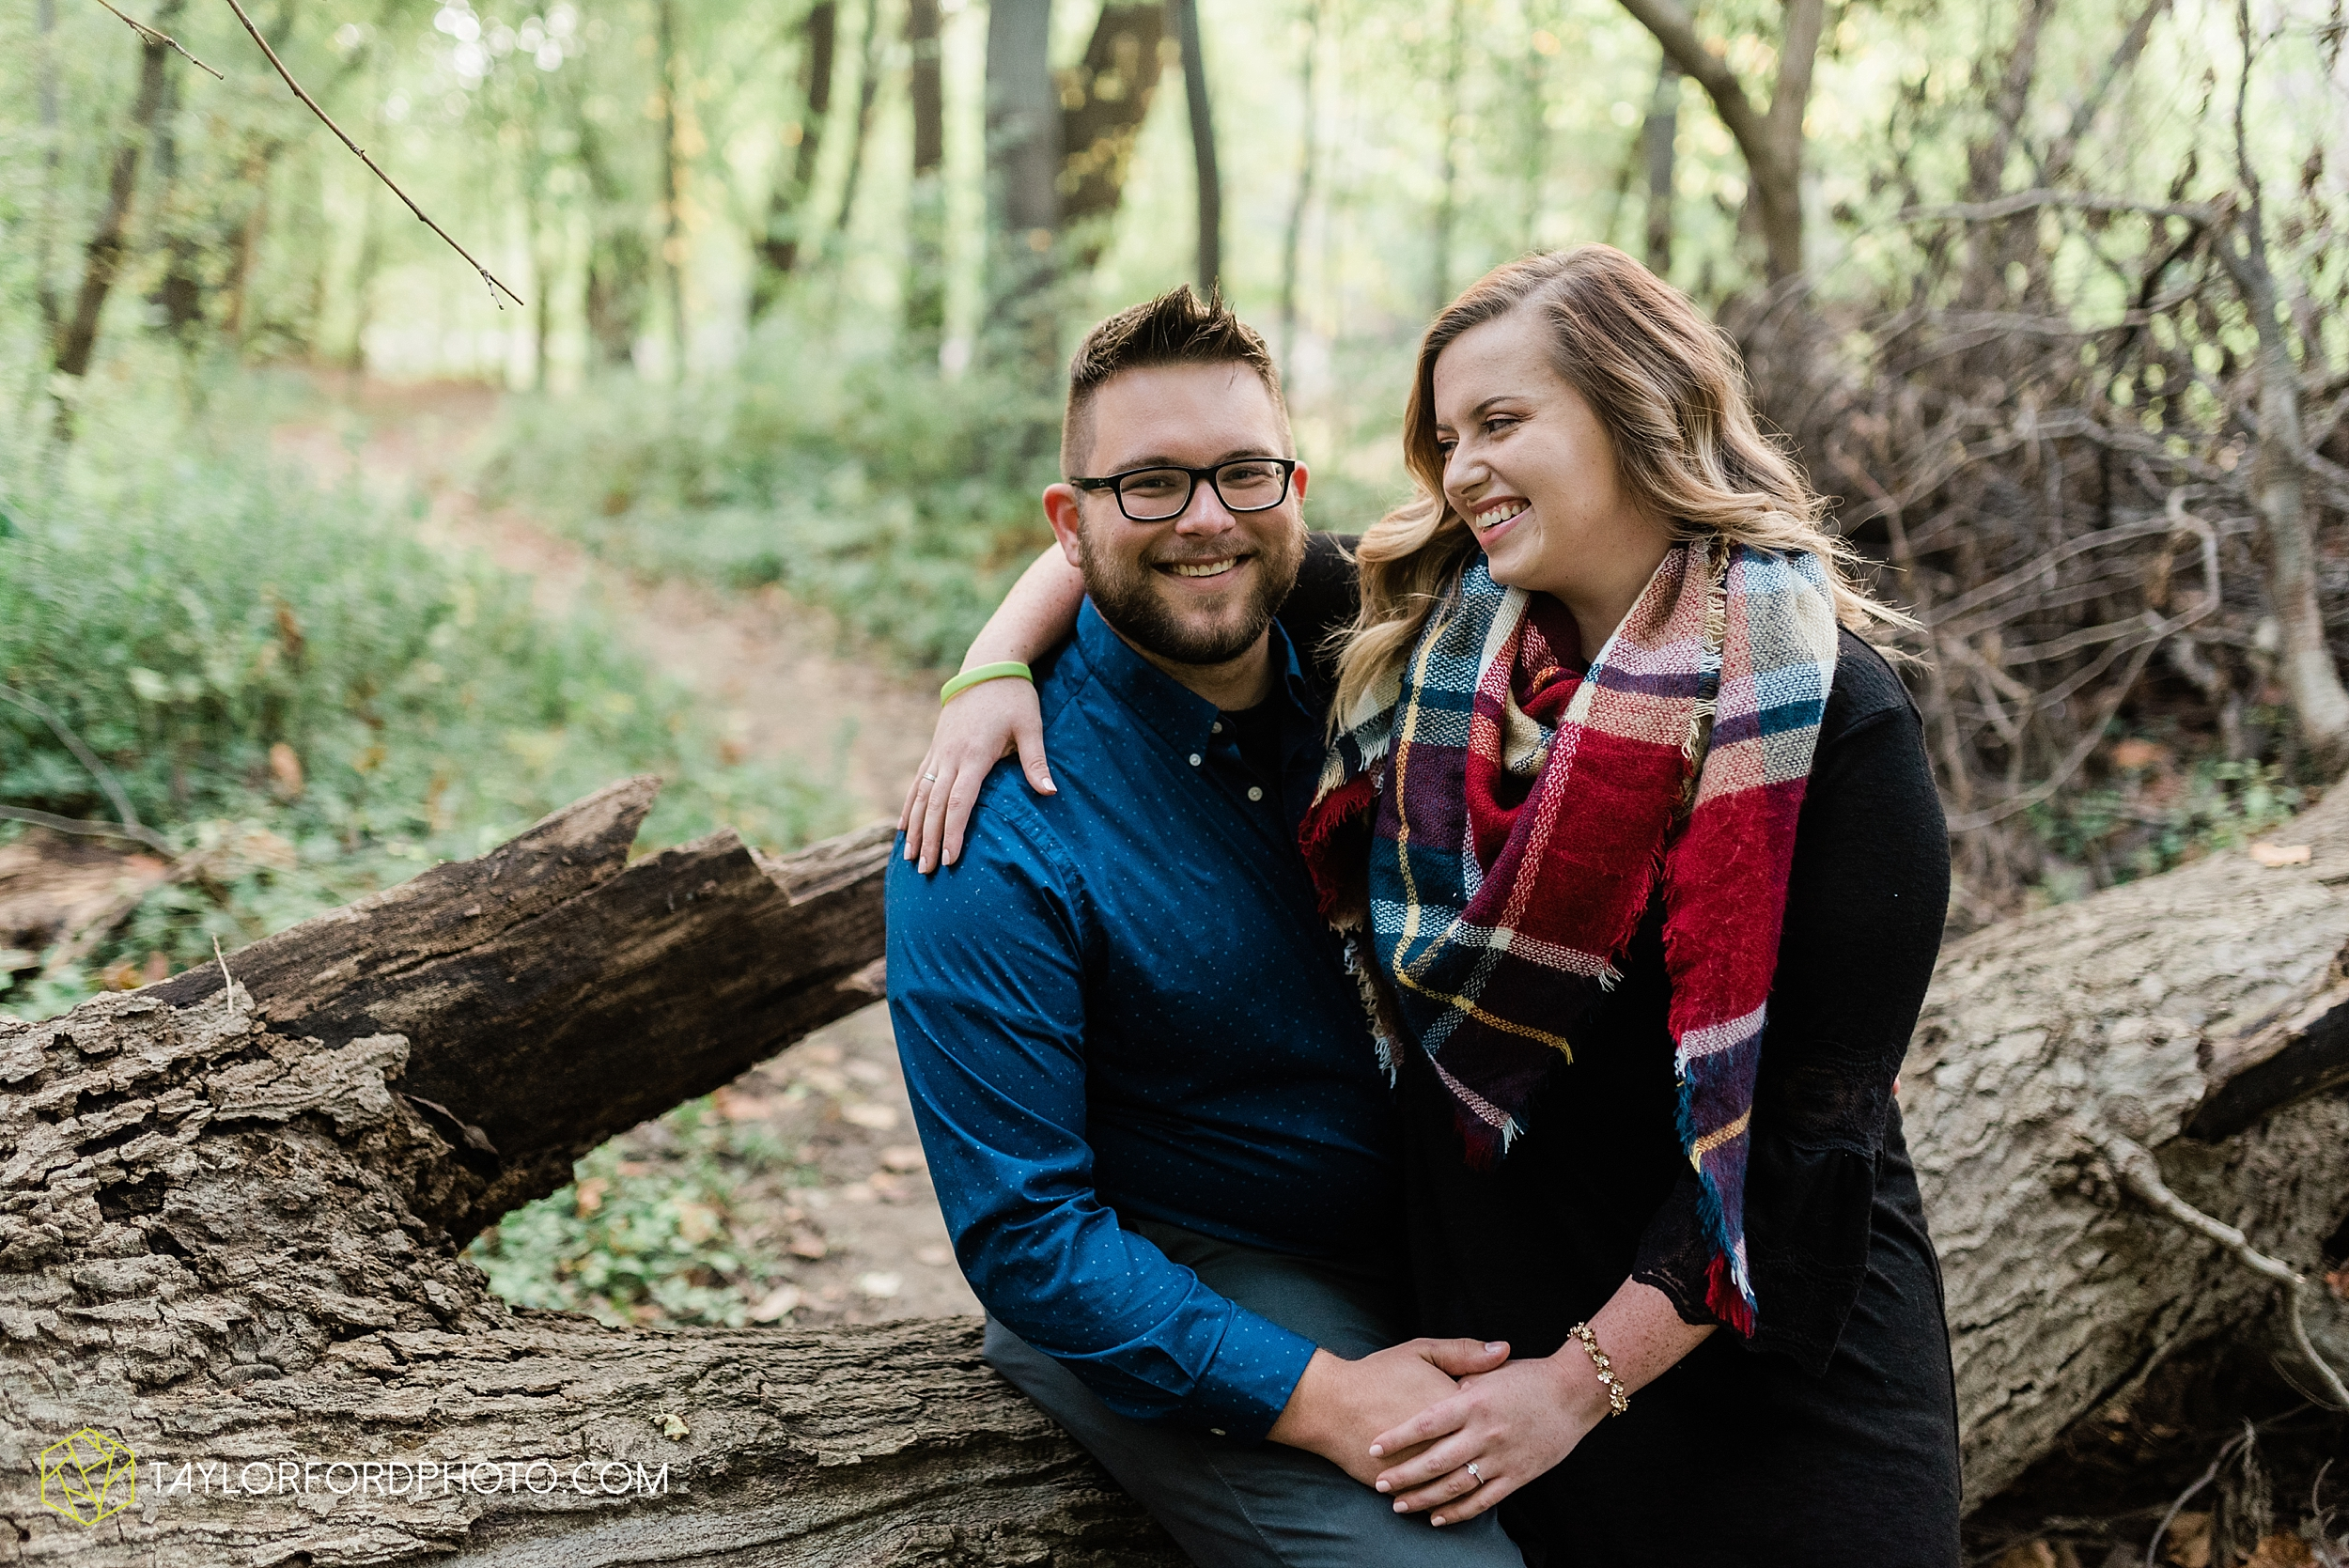 downtown-fort-wayne-engagement-foster-park-bravas-wunderkamer-fox-island-quarry-photographer-taylor-ford-photography_0968.jpg